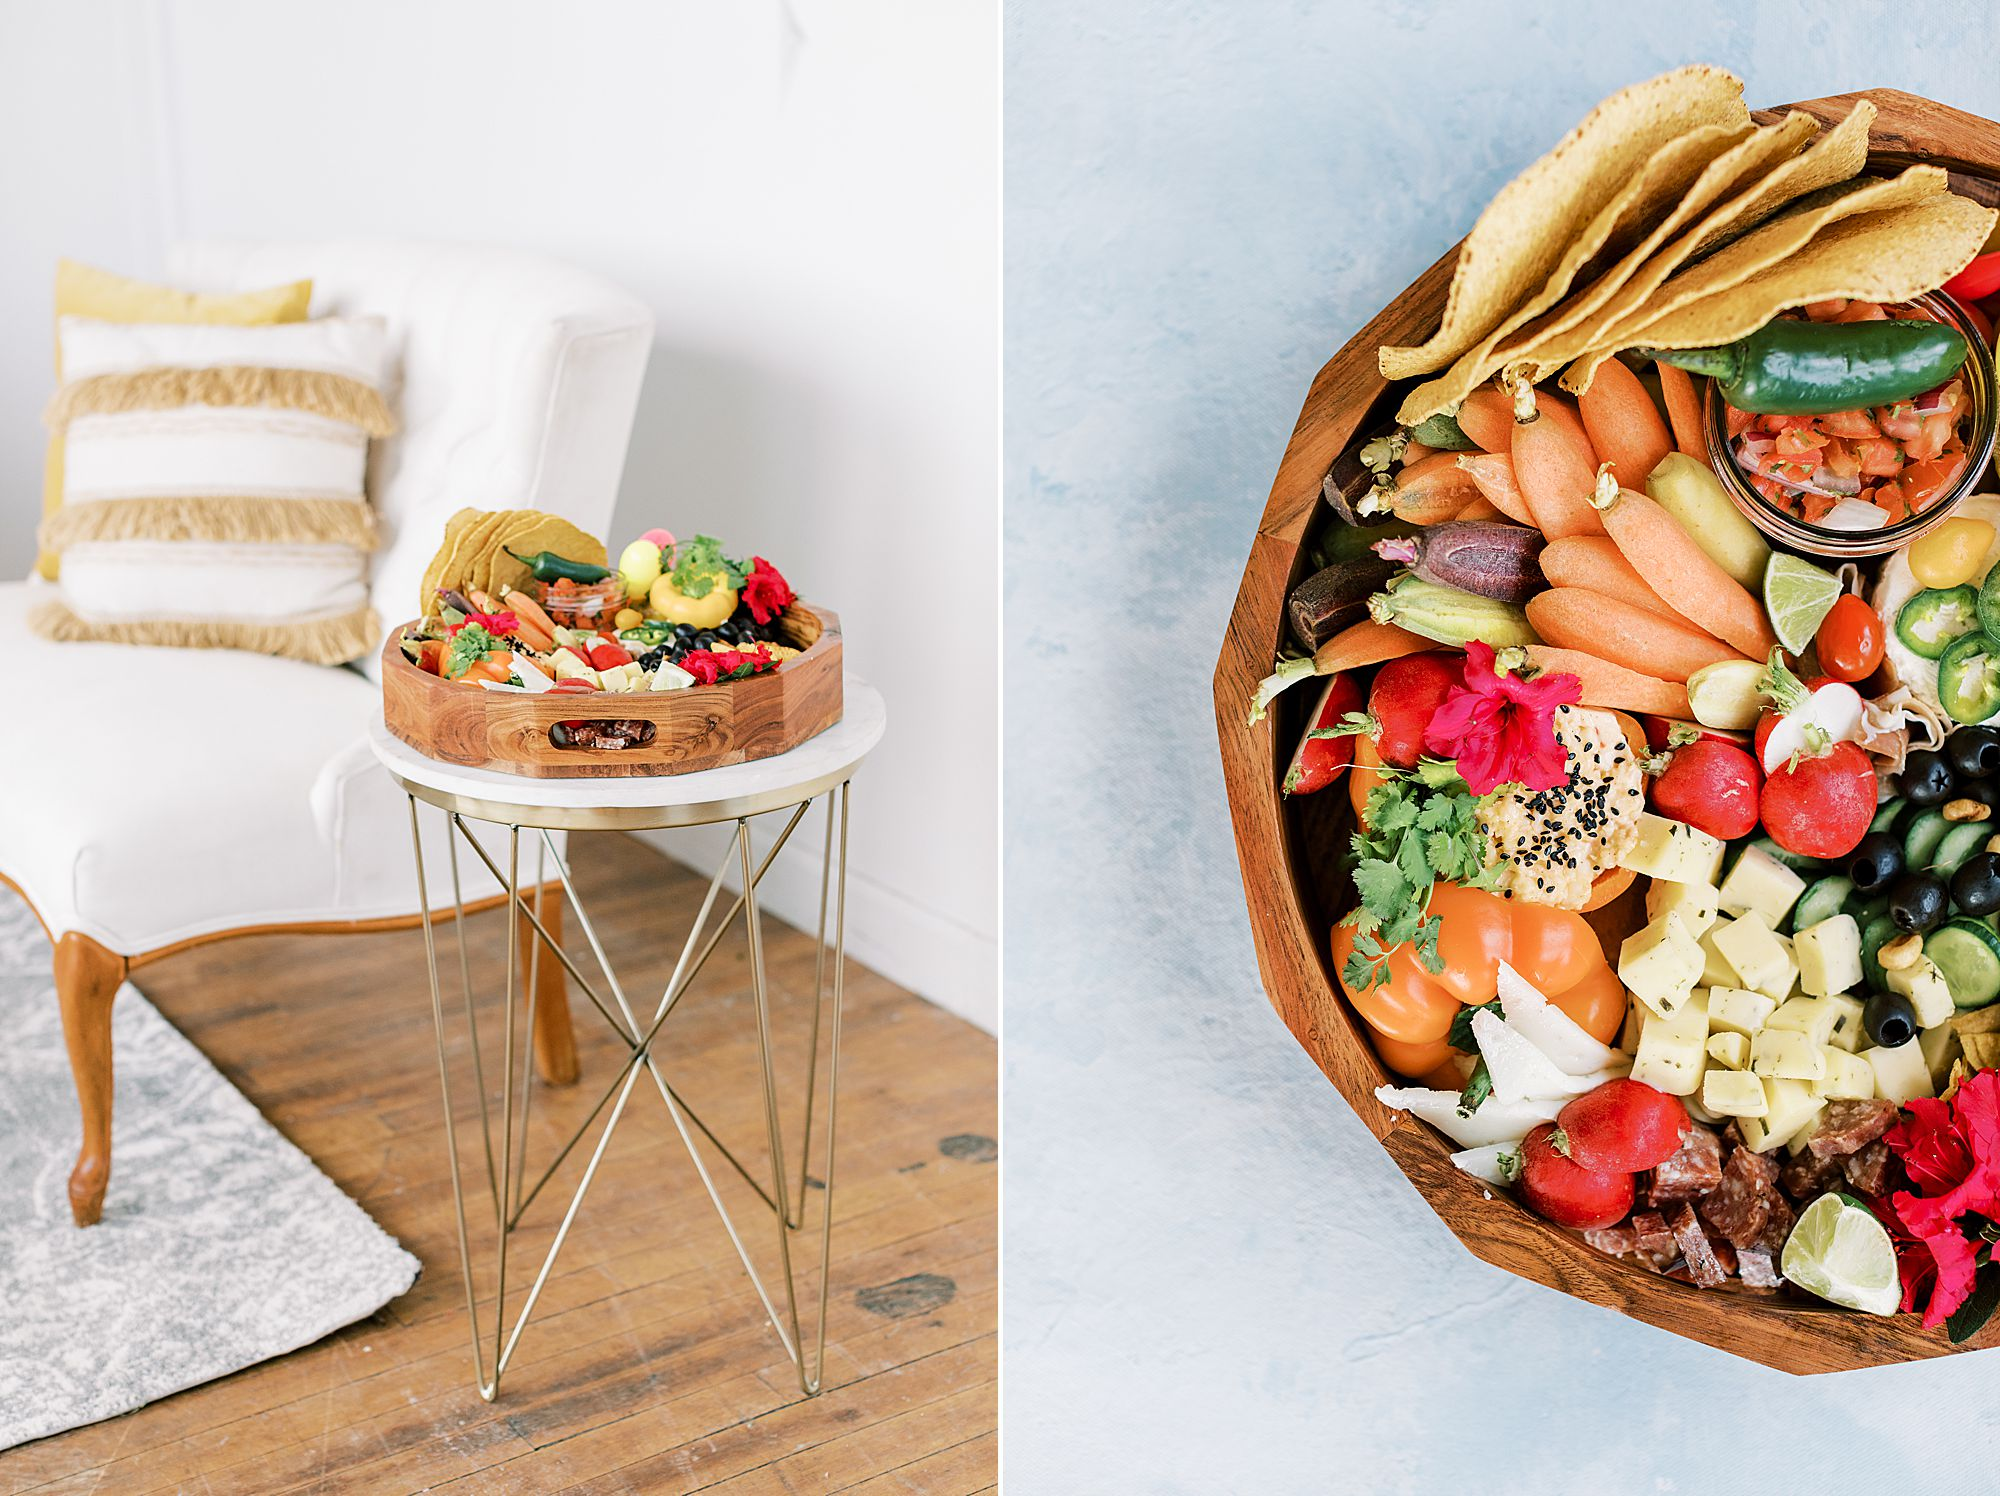 Cinco De Mayo Inspiration for Your FIesta - Party Crush Studio and Ashley Baumgartner_0004.jpg